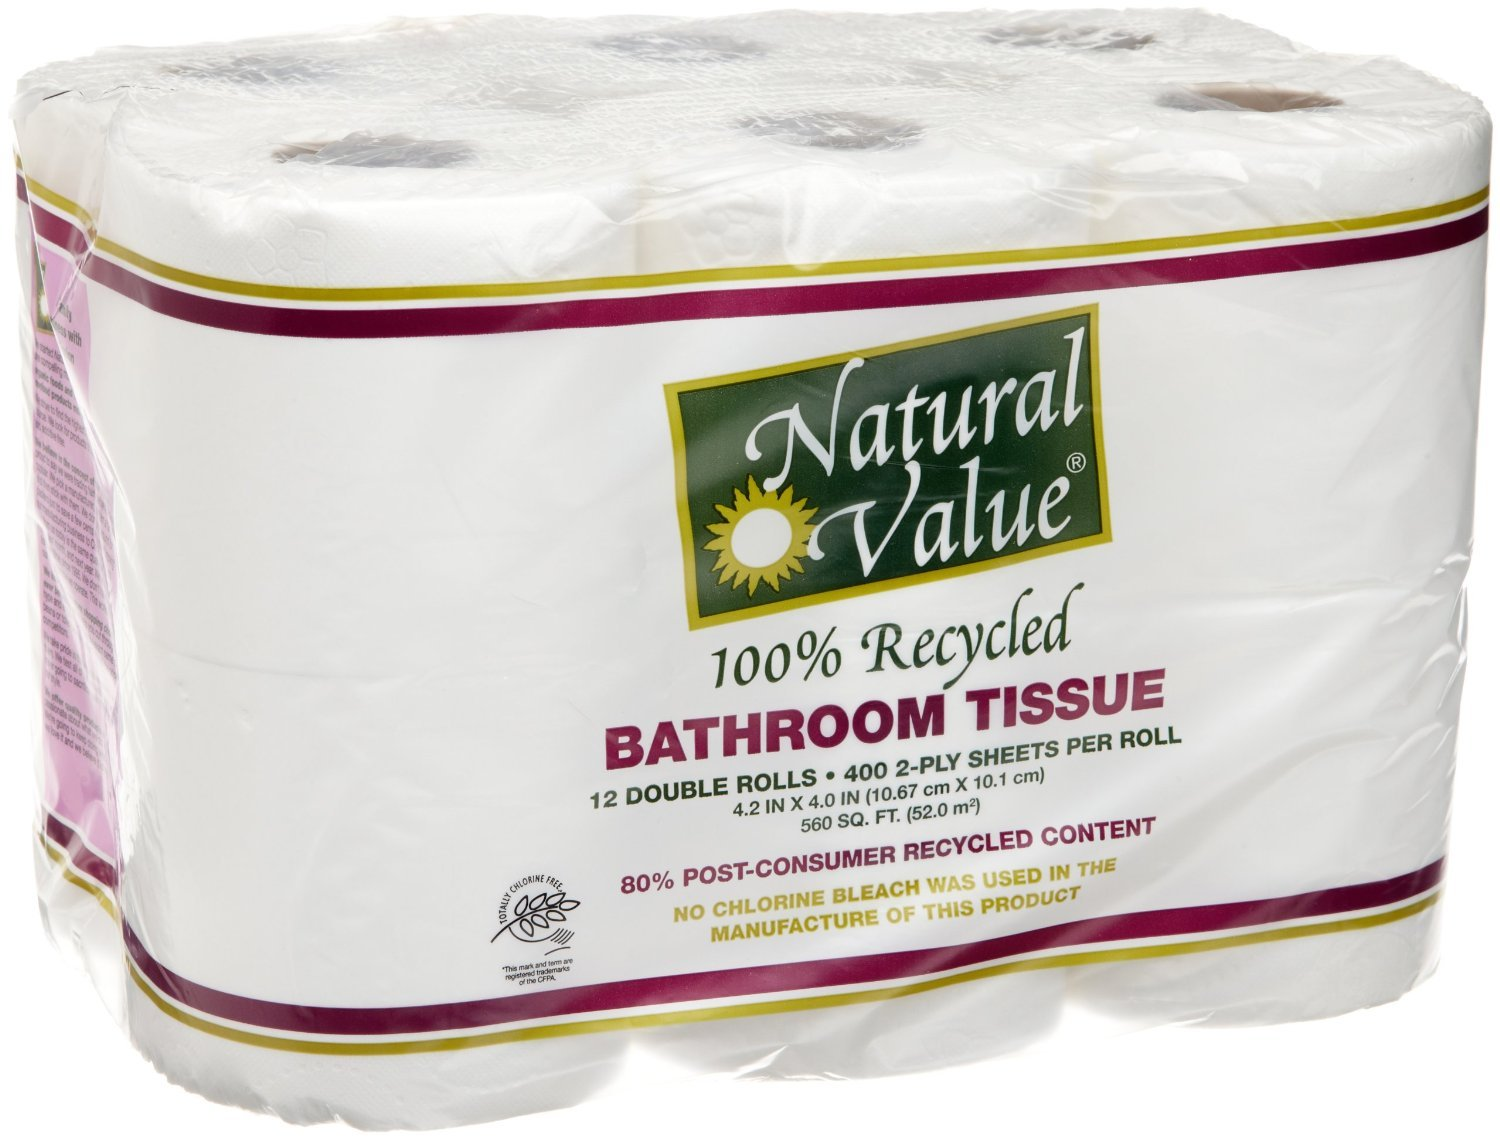 Natural Value Bathroom Tissue Double Roll 2ply 400 sheets 12pack 100% Recycled Paper (a)